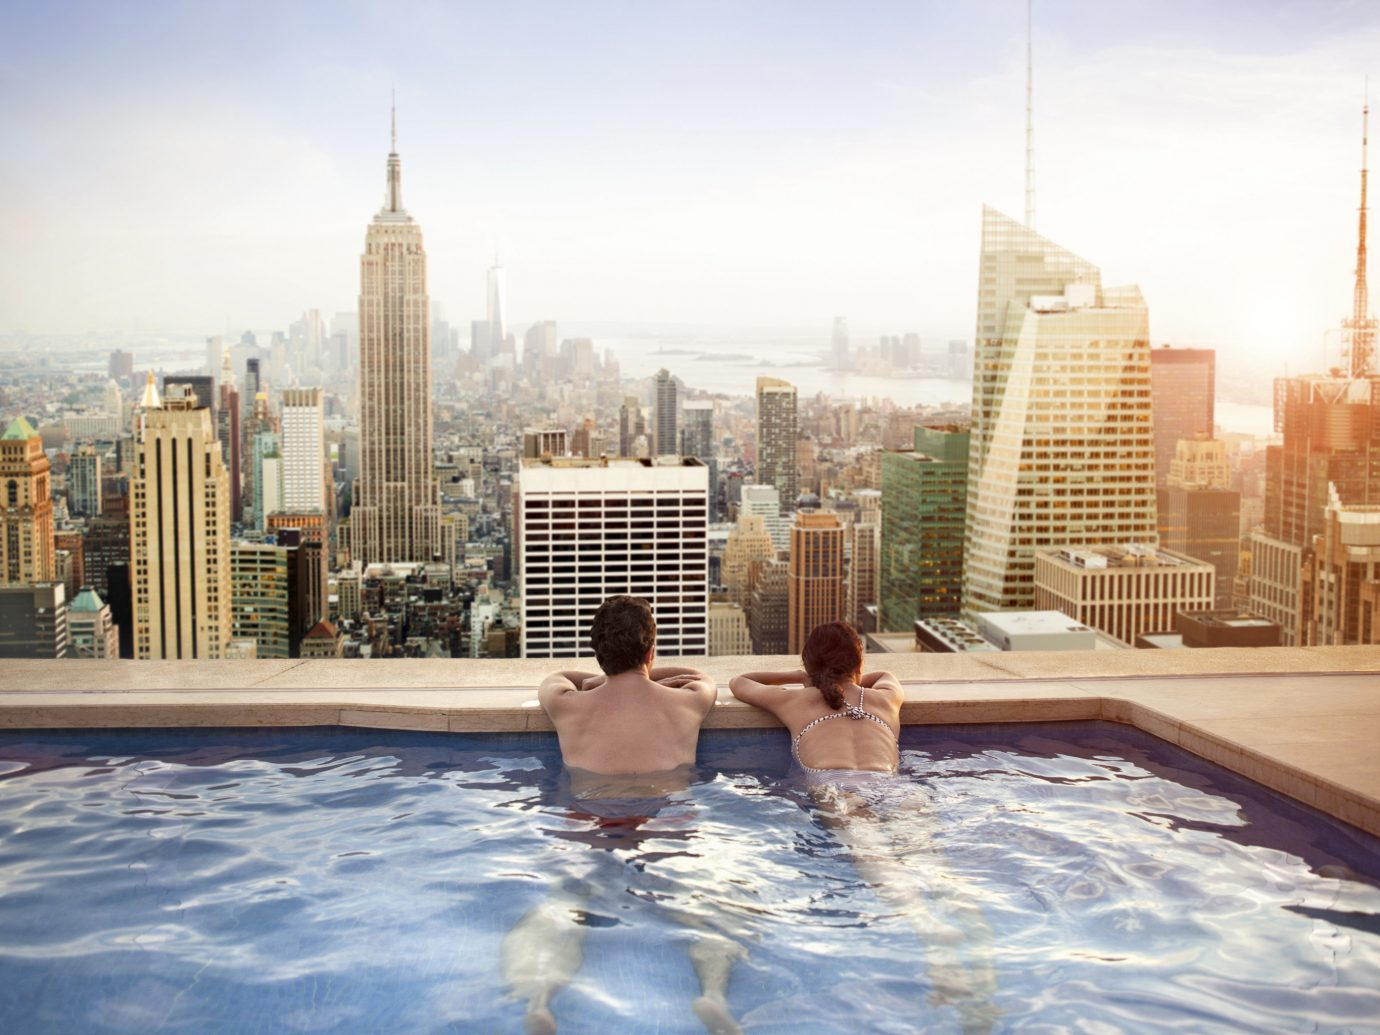 News Travel Tips Travel Trends Trip Ideas sky outdoor City human settlement skyscraper skyline Downtown plaza cityscape water feature swimming pool reflection